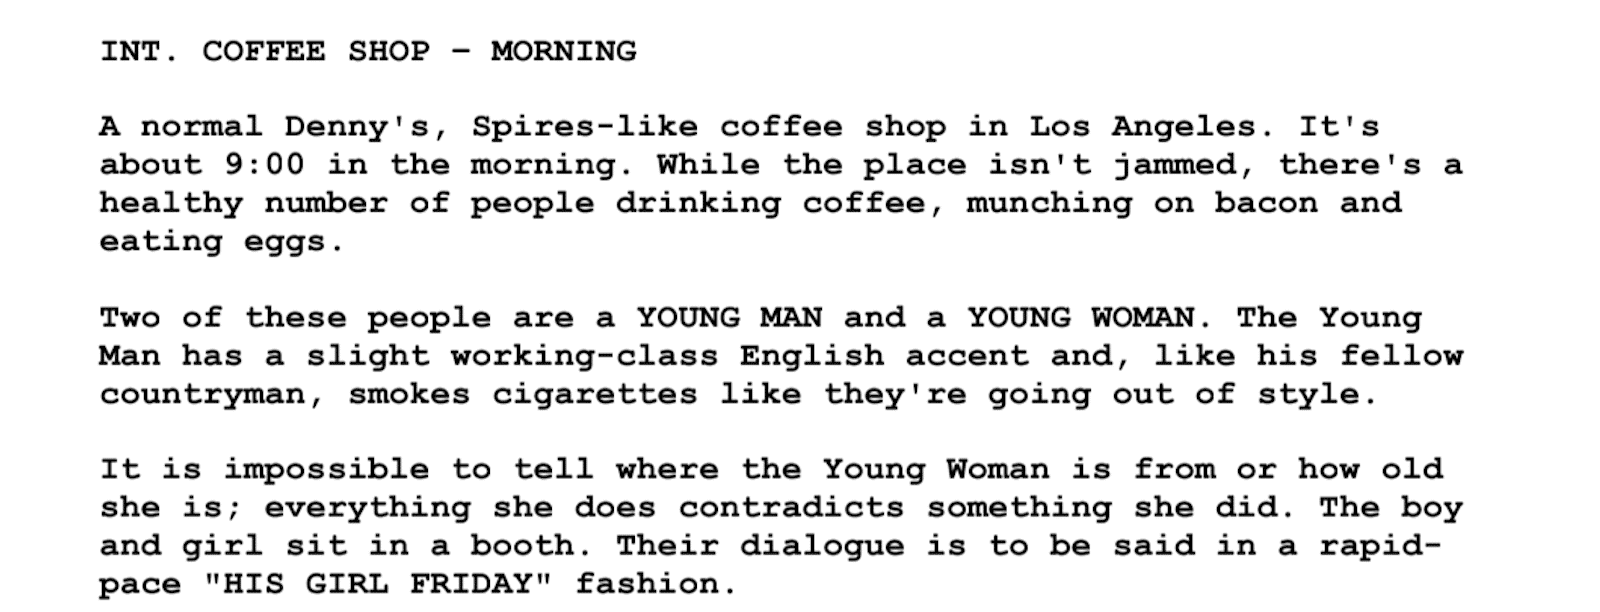 Screenplay Examples - Pulp Fiction Script - Screenplay Snippet 15 - Coffee Shop